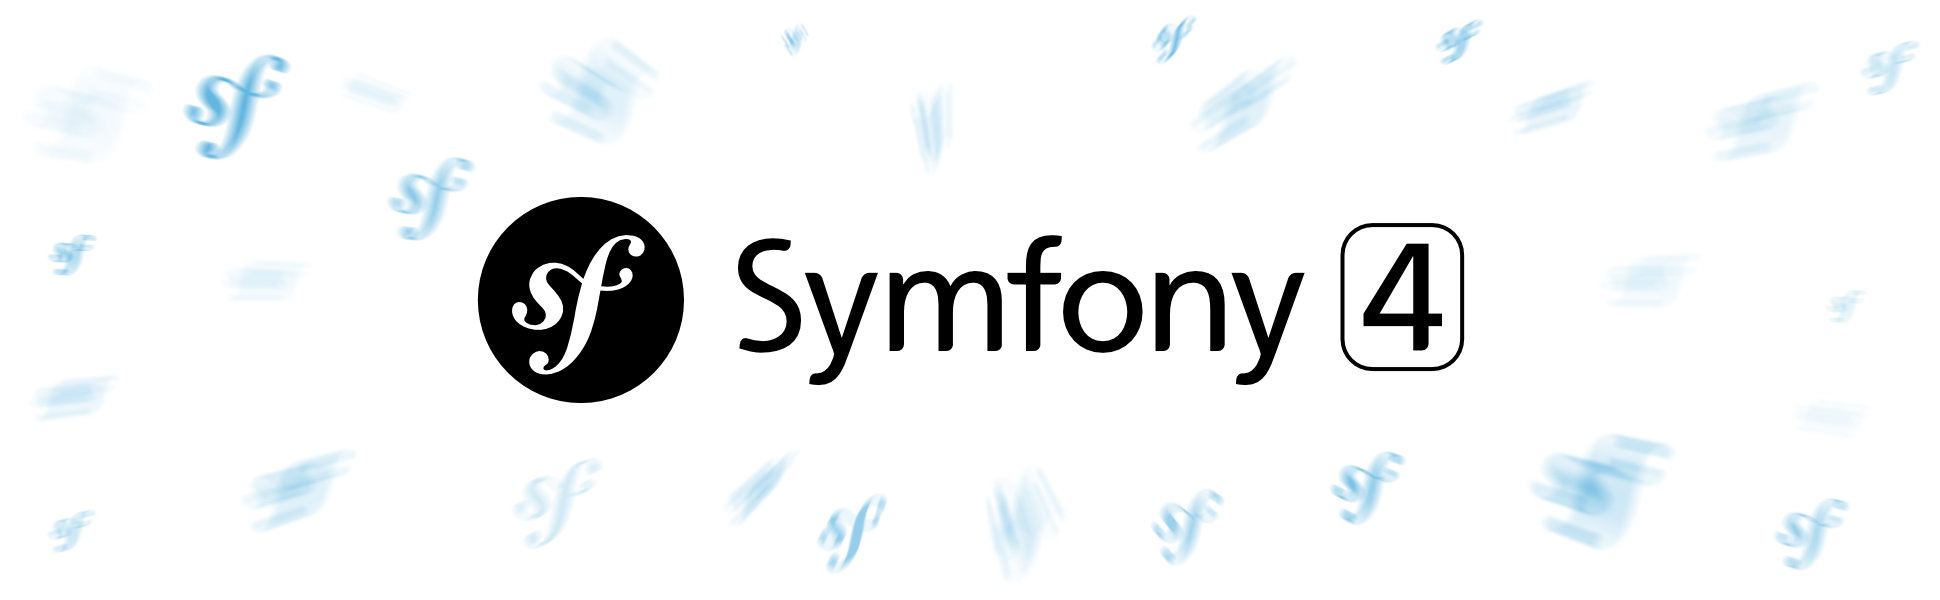 What's new in Symfony™ 4 ? Clever Age team give you a summary of Fabien Potencier's conference in Ho Chi Minh City